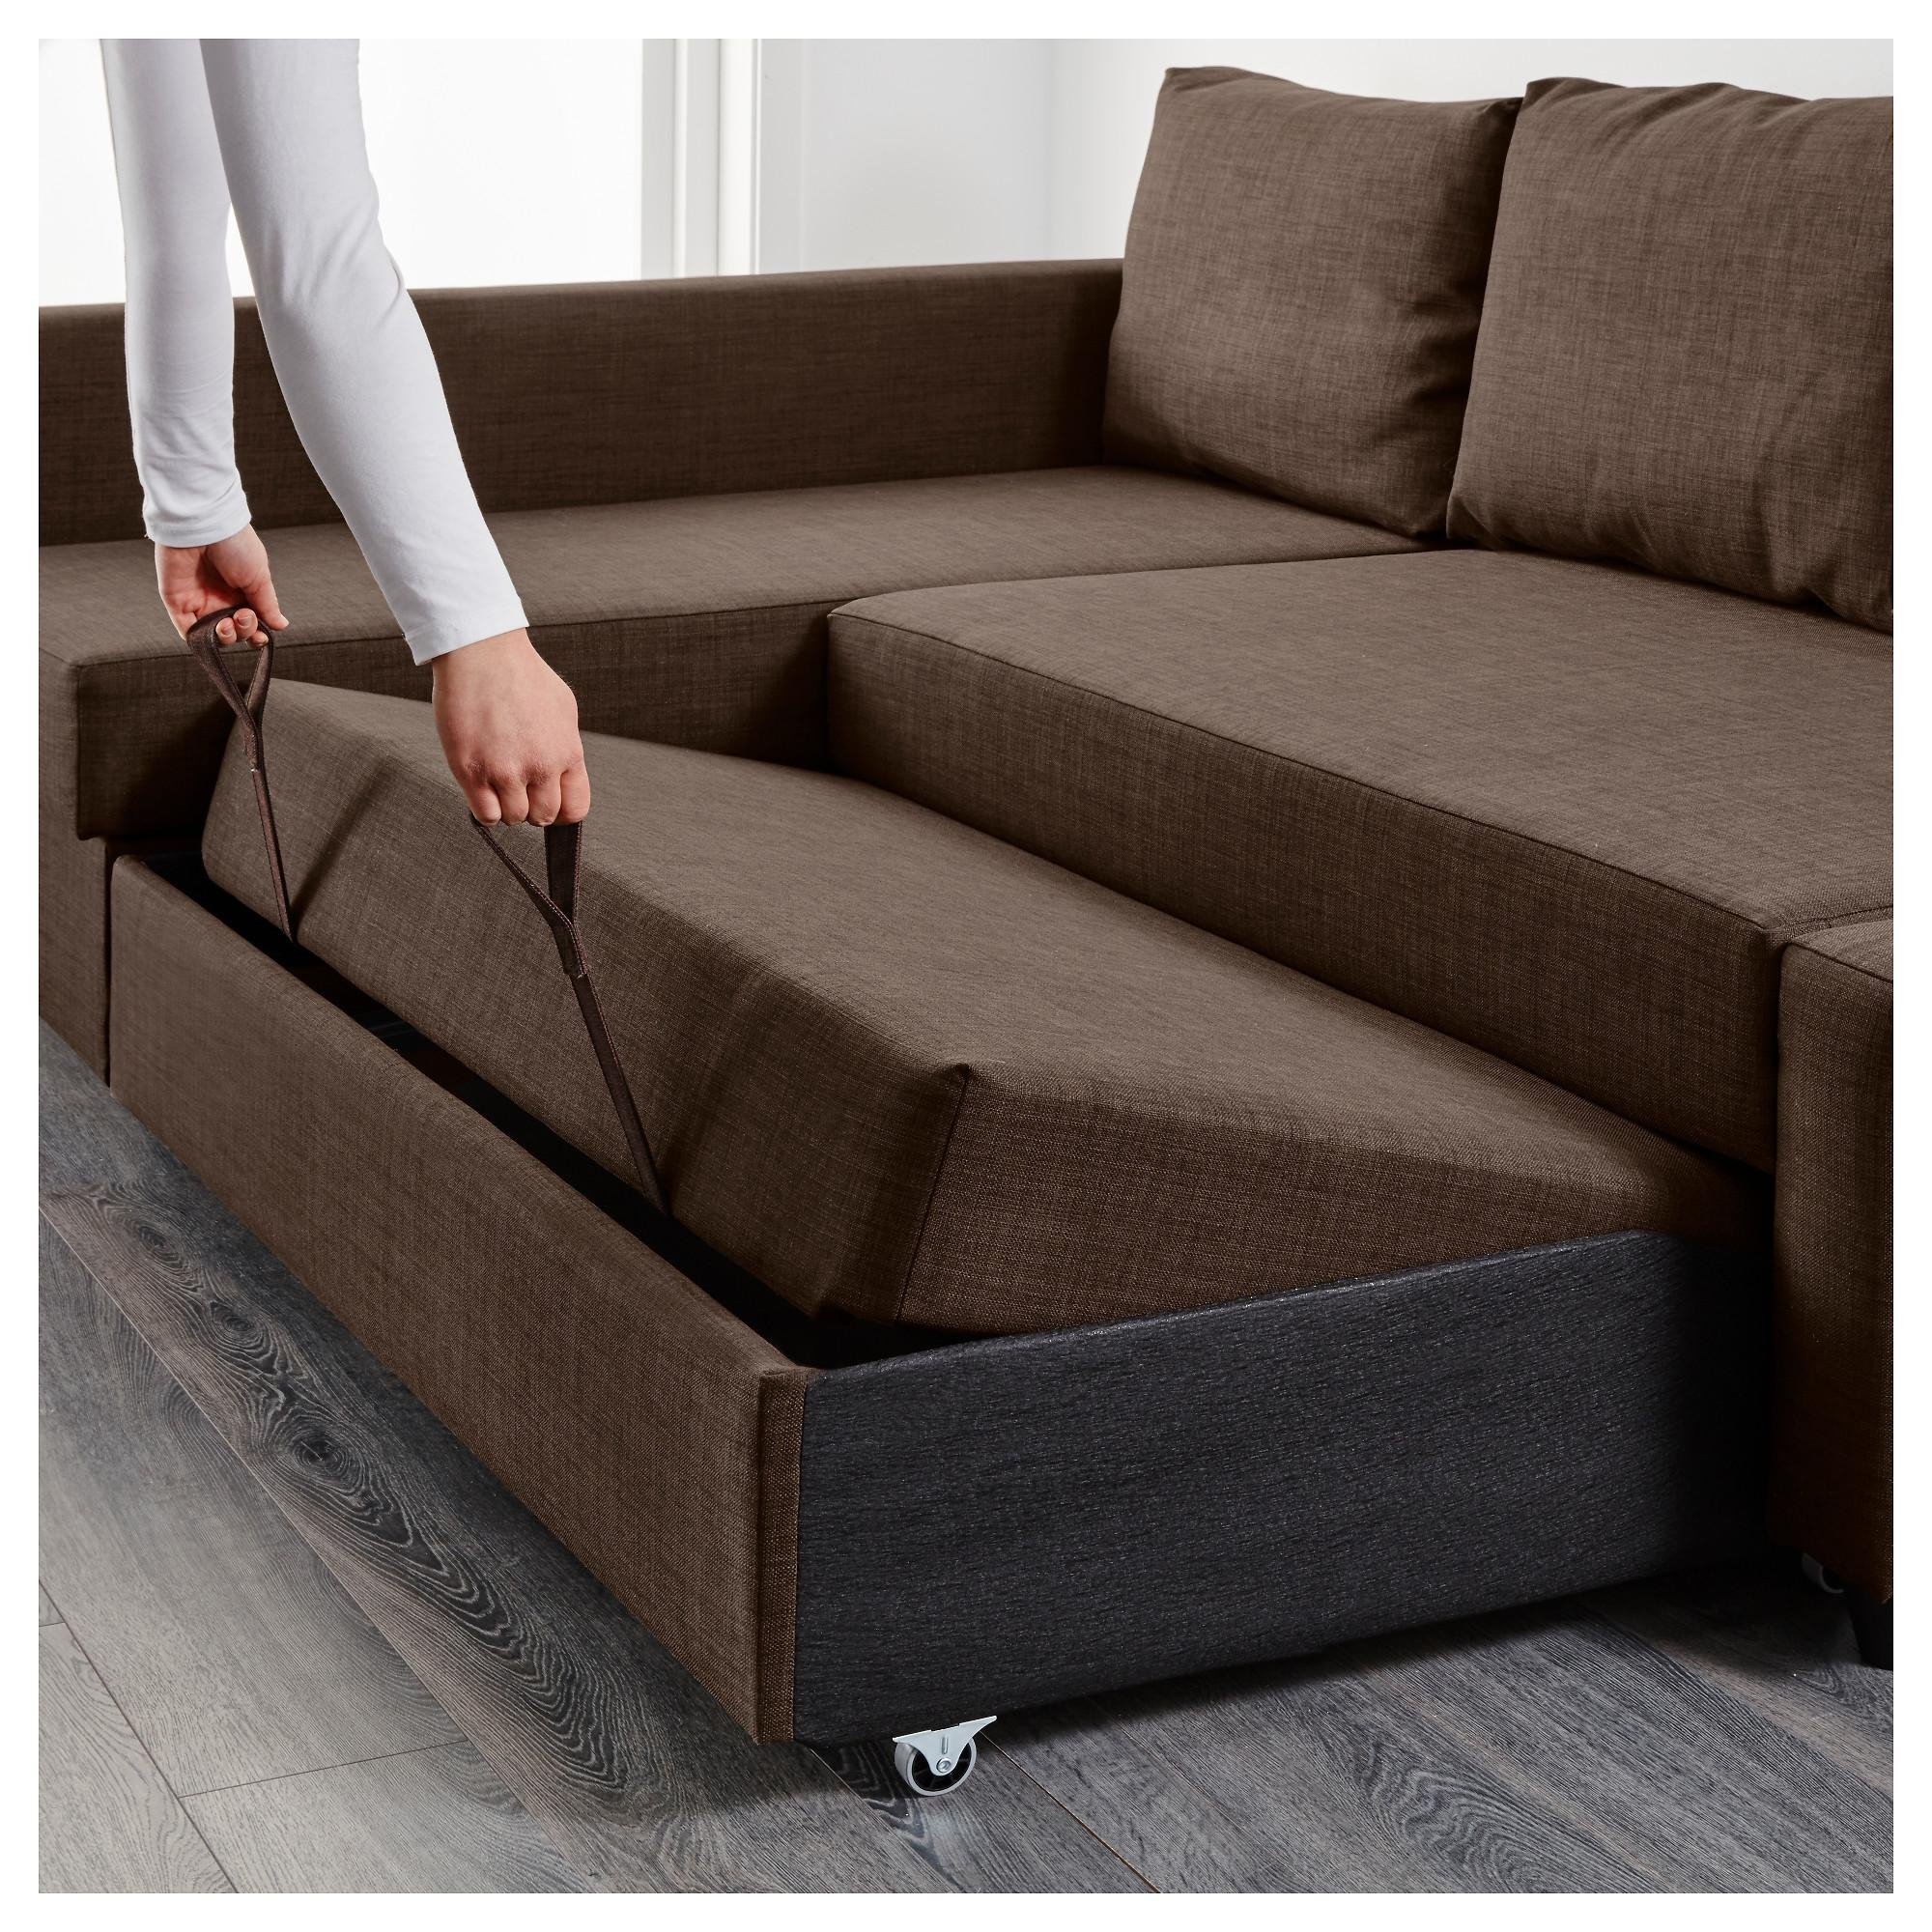 ikea single sleeper sofa dfs fling bed review 2018 latest beds ideas